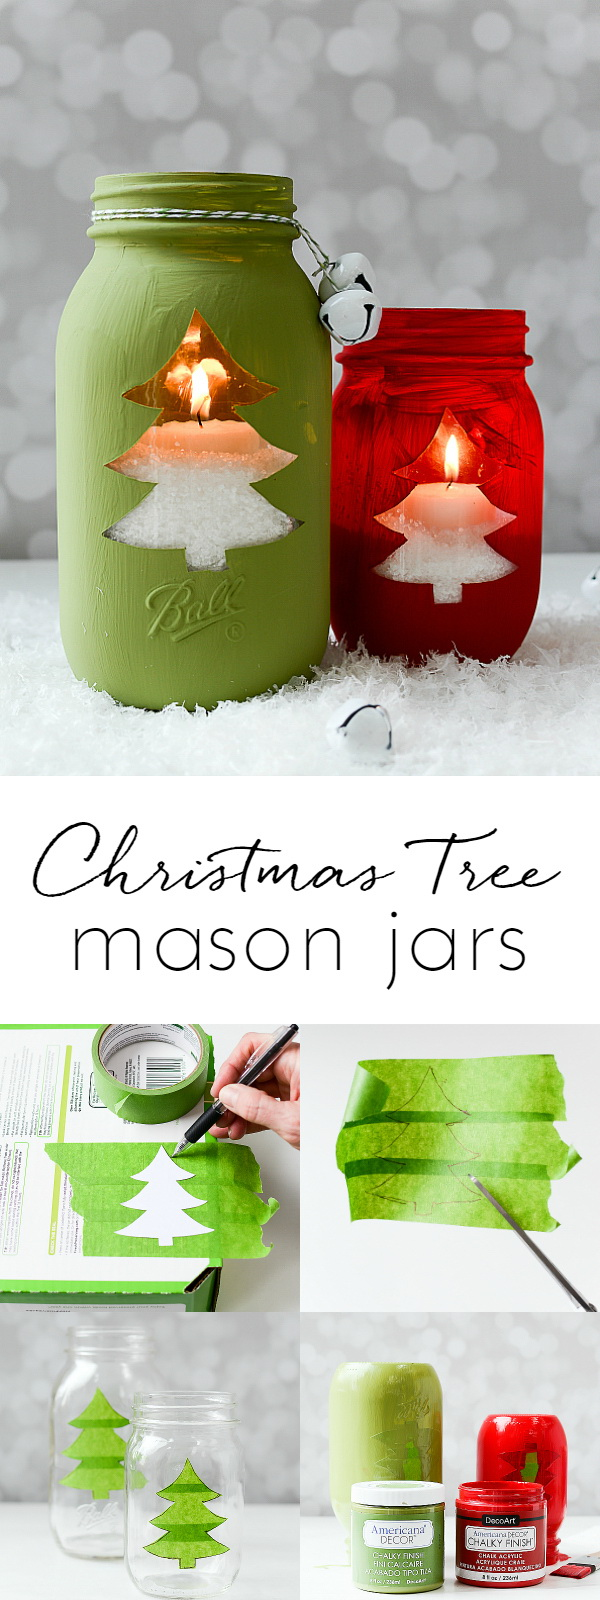 Mason Jar Projects 40 Creative Diy Mason Jar Projects With Tutorials Listing More